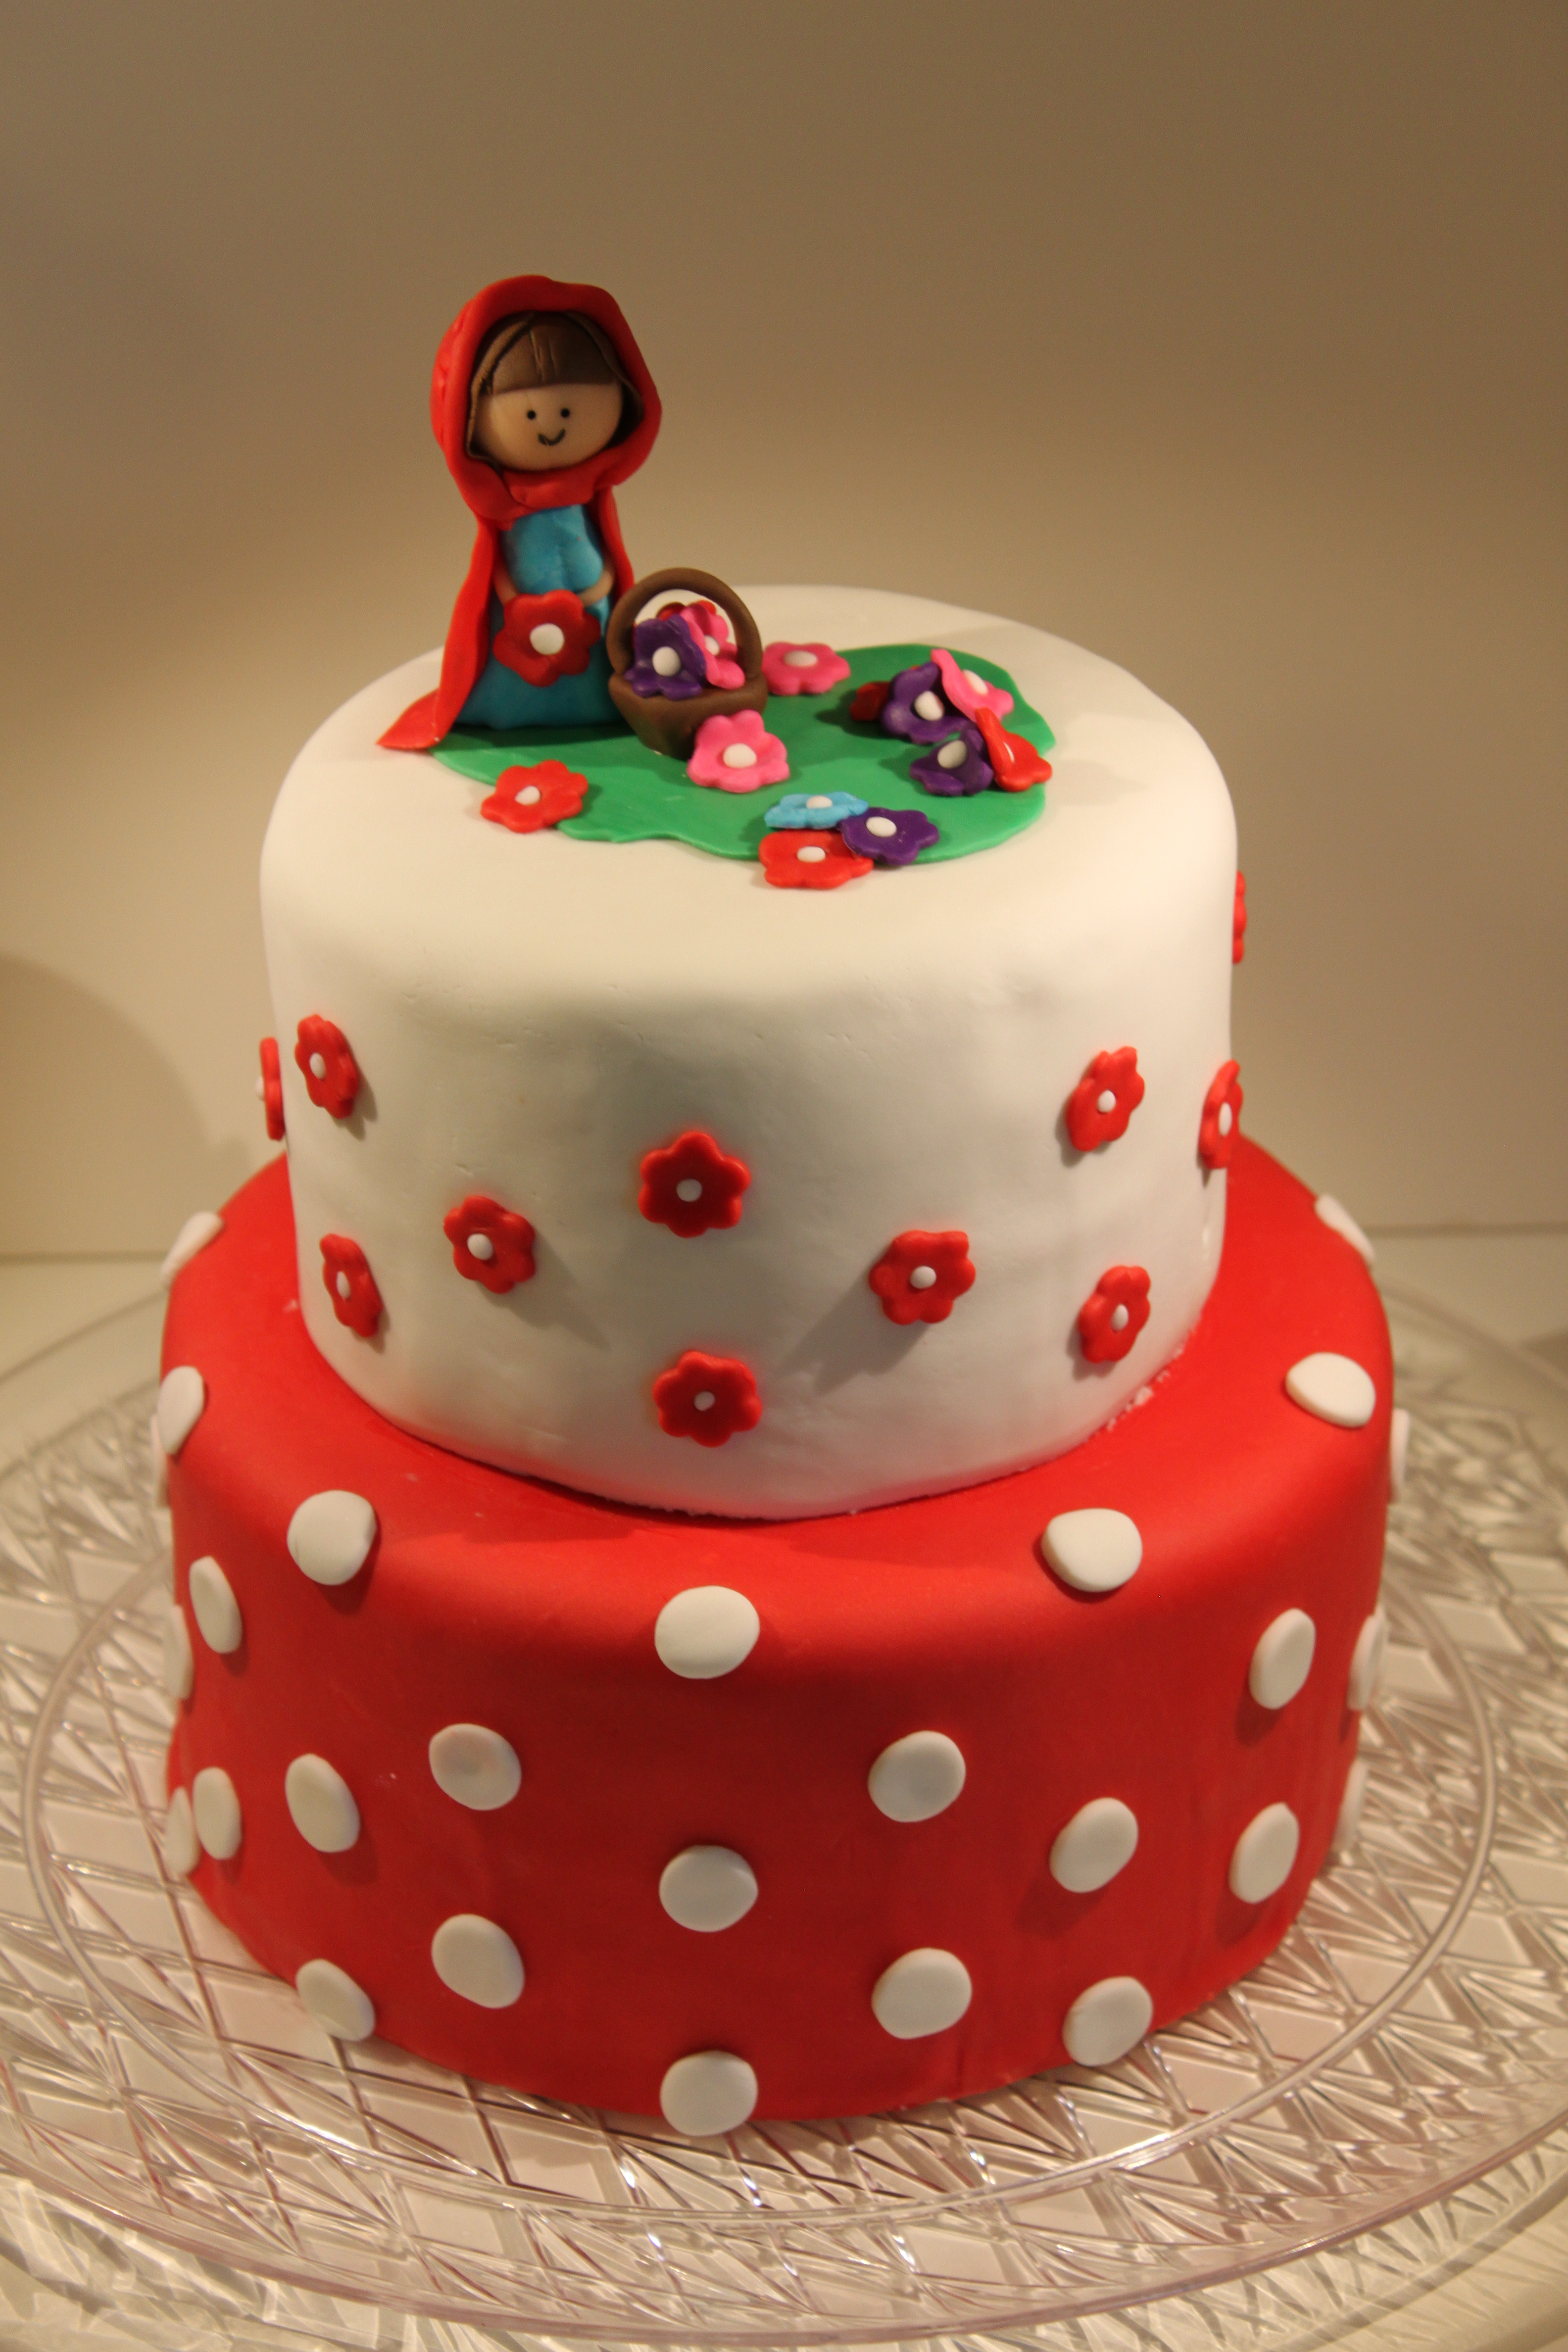 Outstanding Little Red Riding Hood Fondant Birthday Cake Pennys Food Blog Funny Birthday Cards Online Chimdamsfinfo